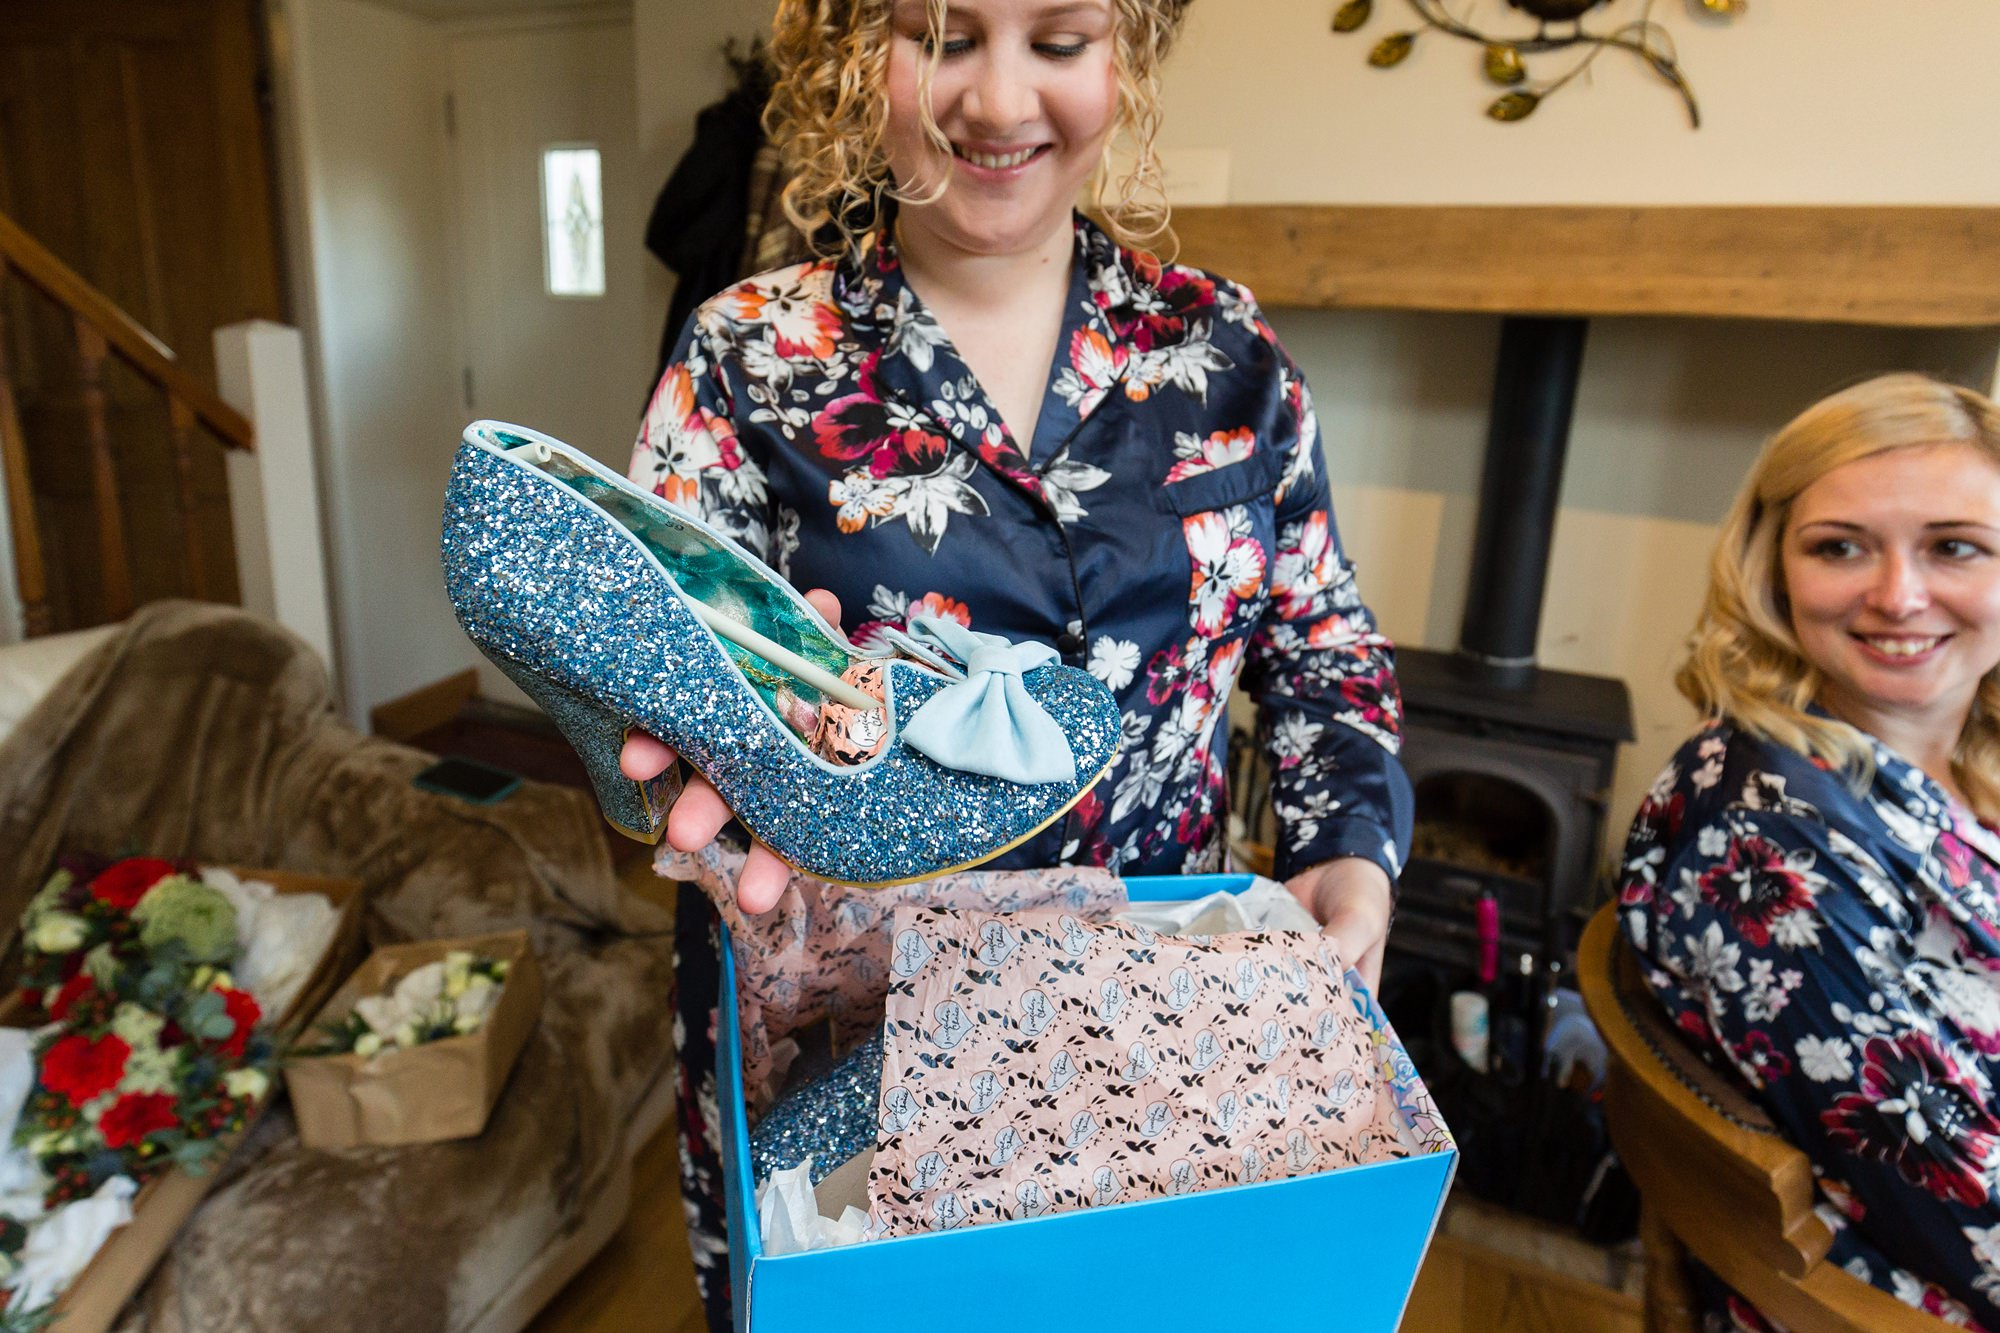 Yorkshire Wedding Photography bridesmaid shows off blue glitter wedding shoes by irregular choice